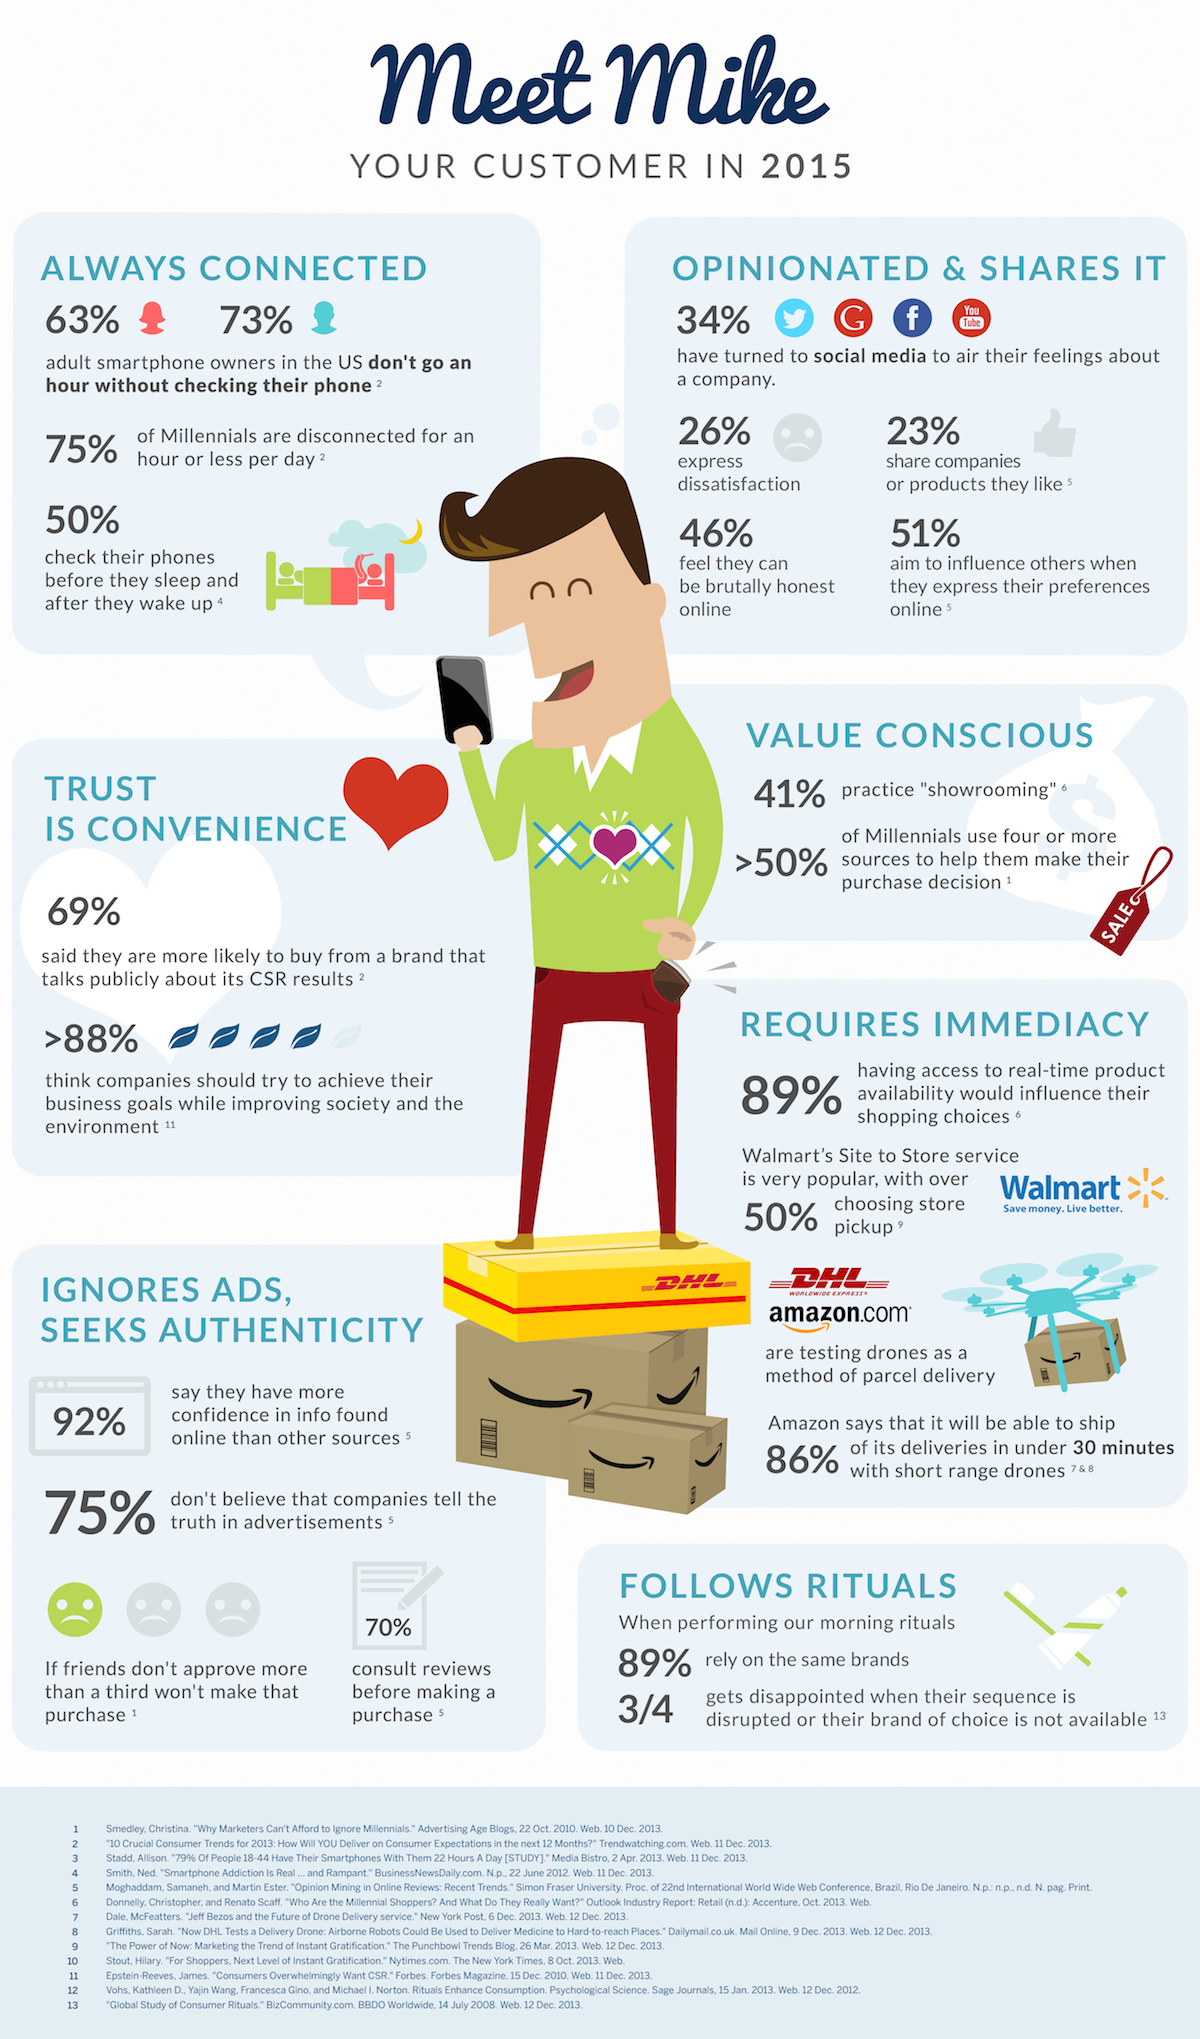 digital-customer-in-2015-infographic